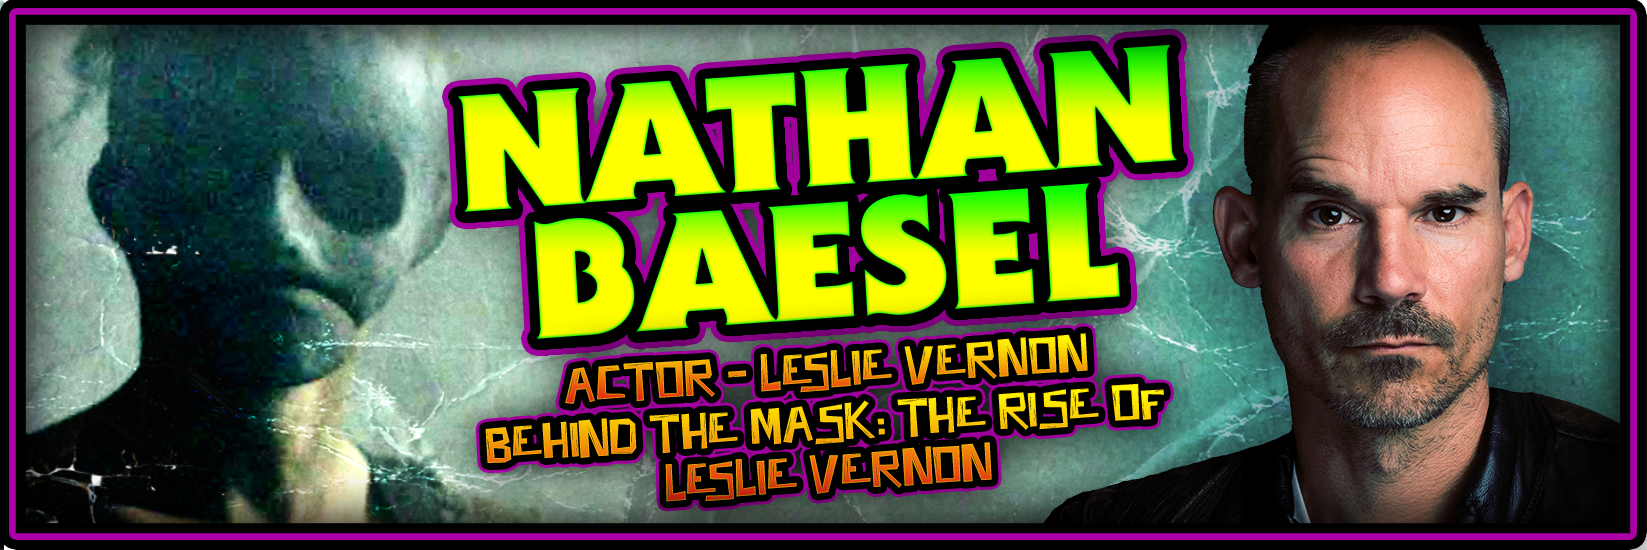 Astronomicon 3 Nathan Baesel Banner.png